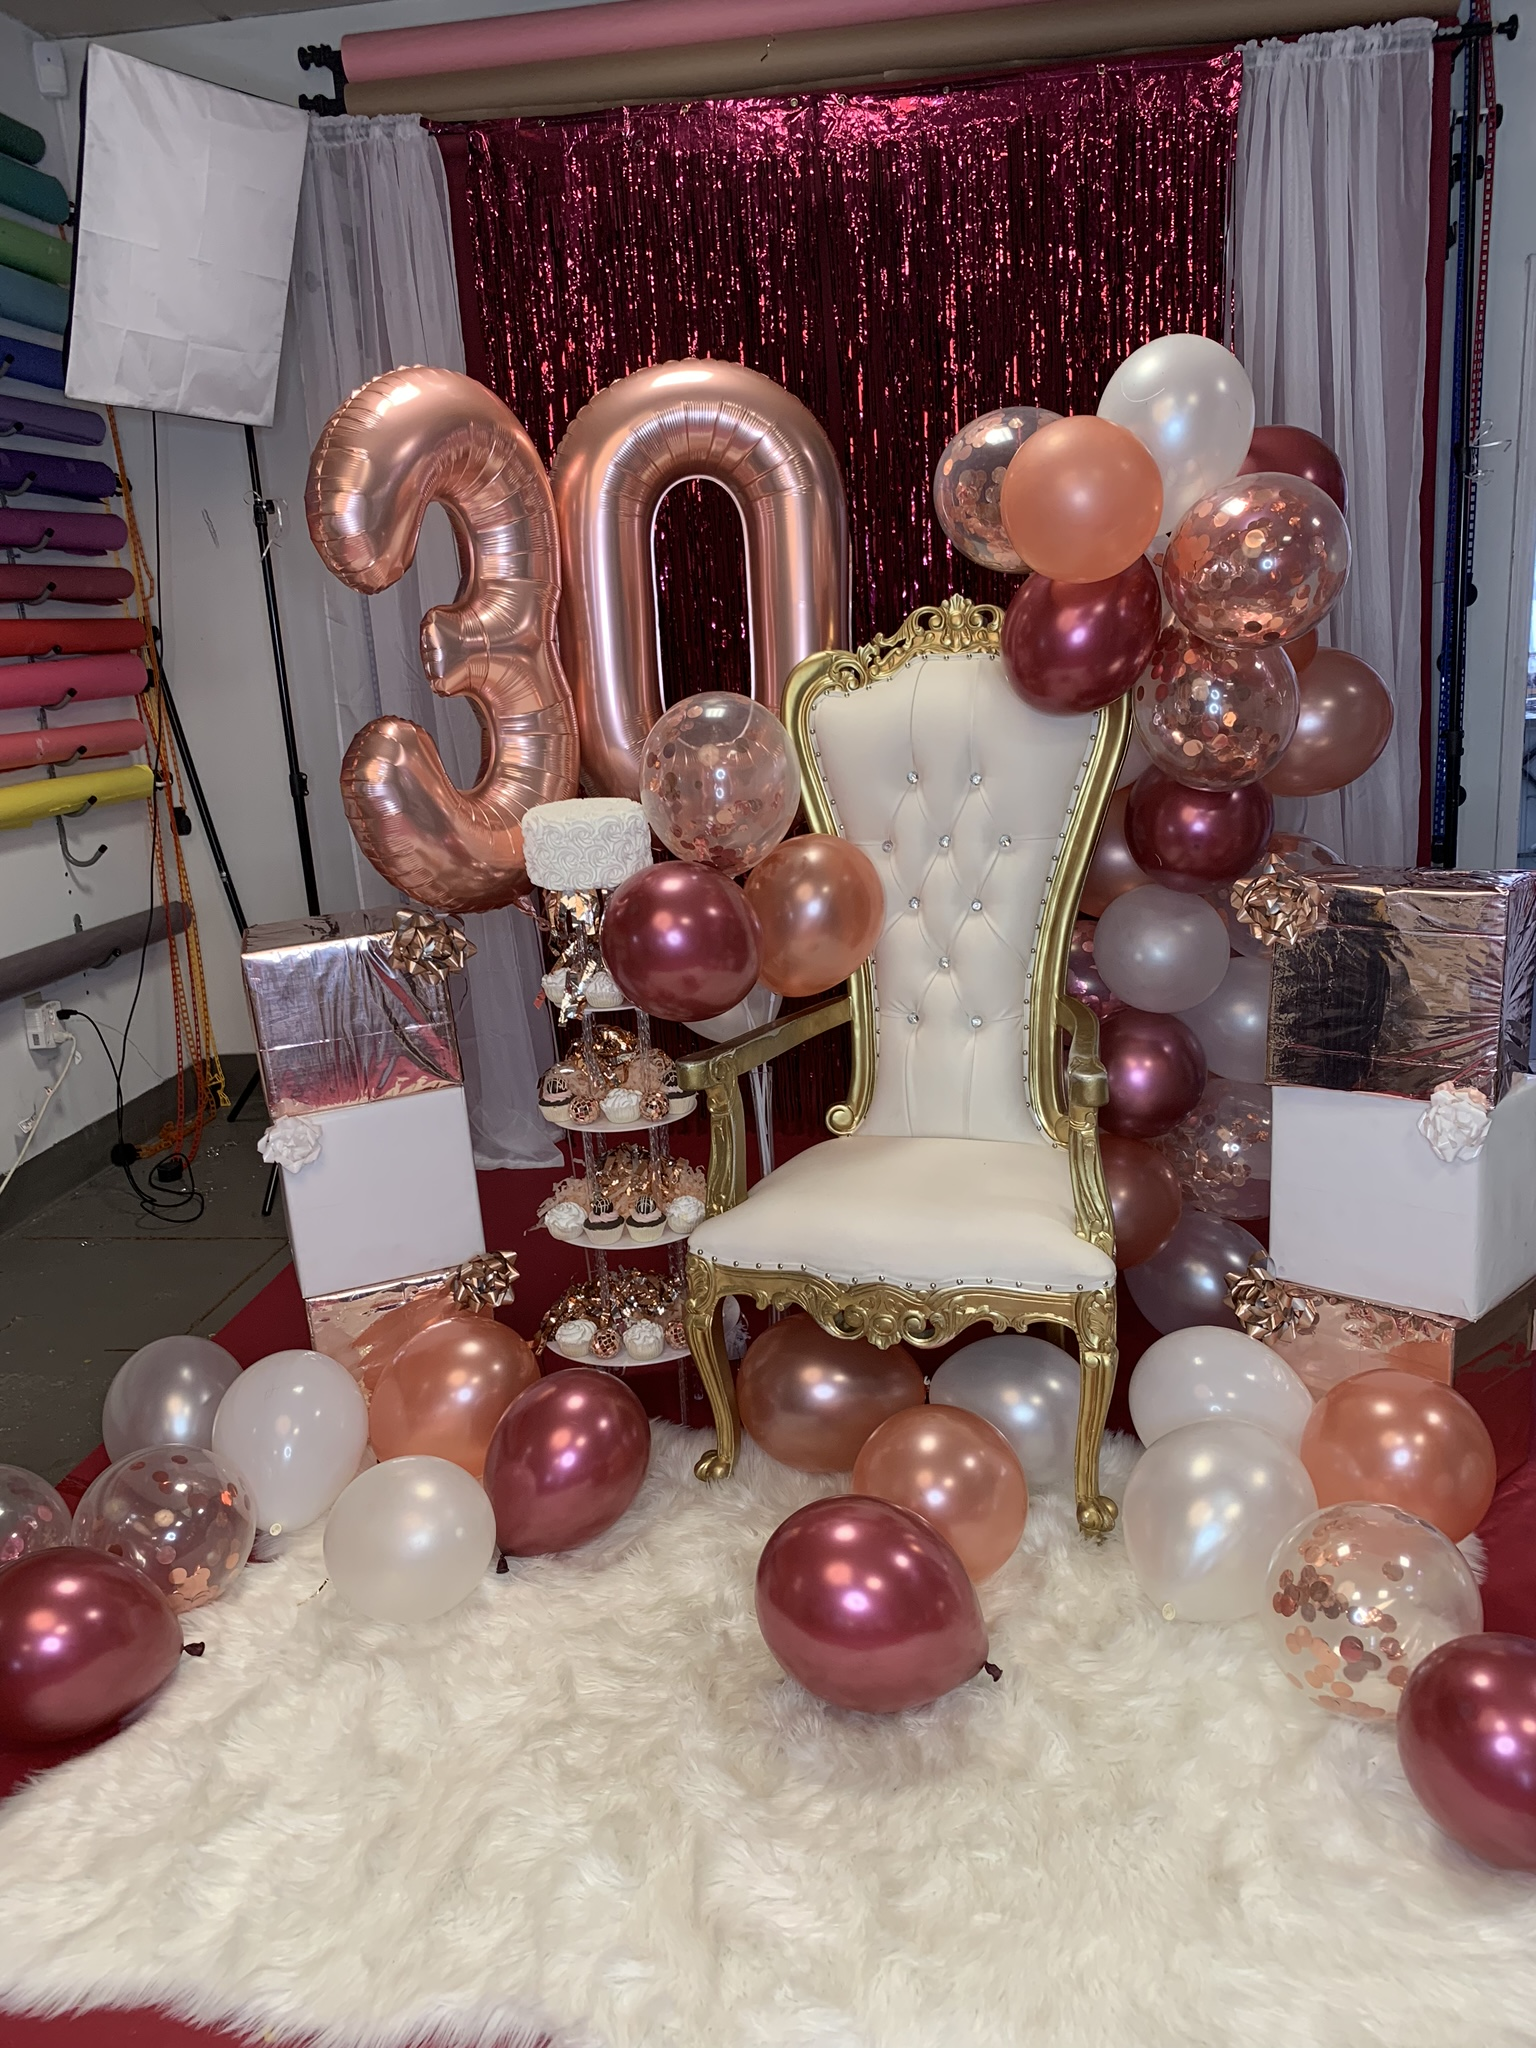 Scene Design Is Example And Is NOT LIMITED To Color Schemes Presented. Clients Provided Pre-Filled Helium Numbers & Helium Rubber Balloons (floor & rope balloons on chair provide by photographer)